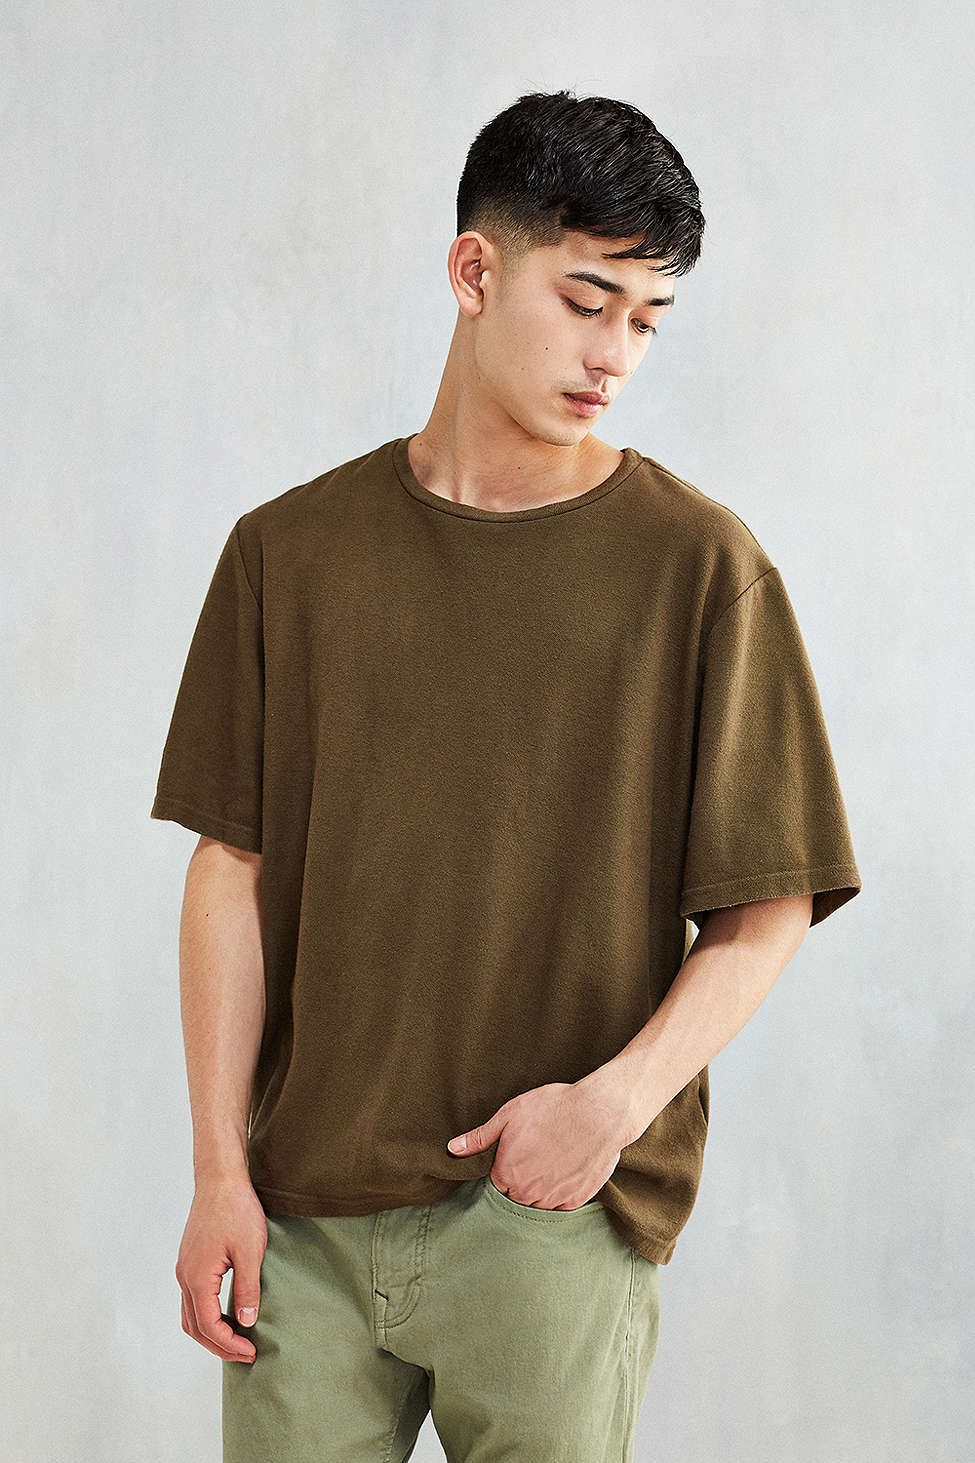 You can find t shirt, Men oversized t shirts free shipping, oversized t shirts men and view oversized t shirts reviews to help you choose. Related Searches t shirt.